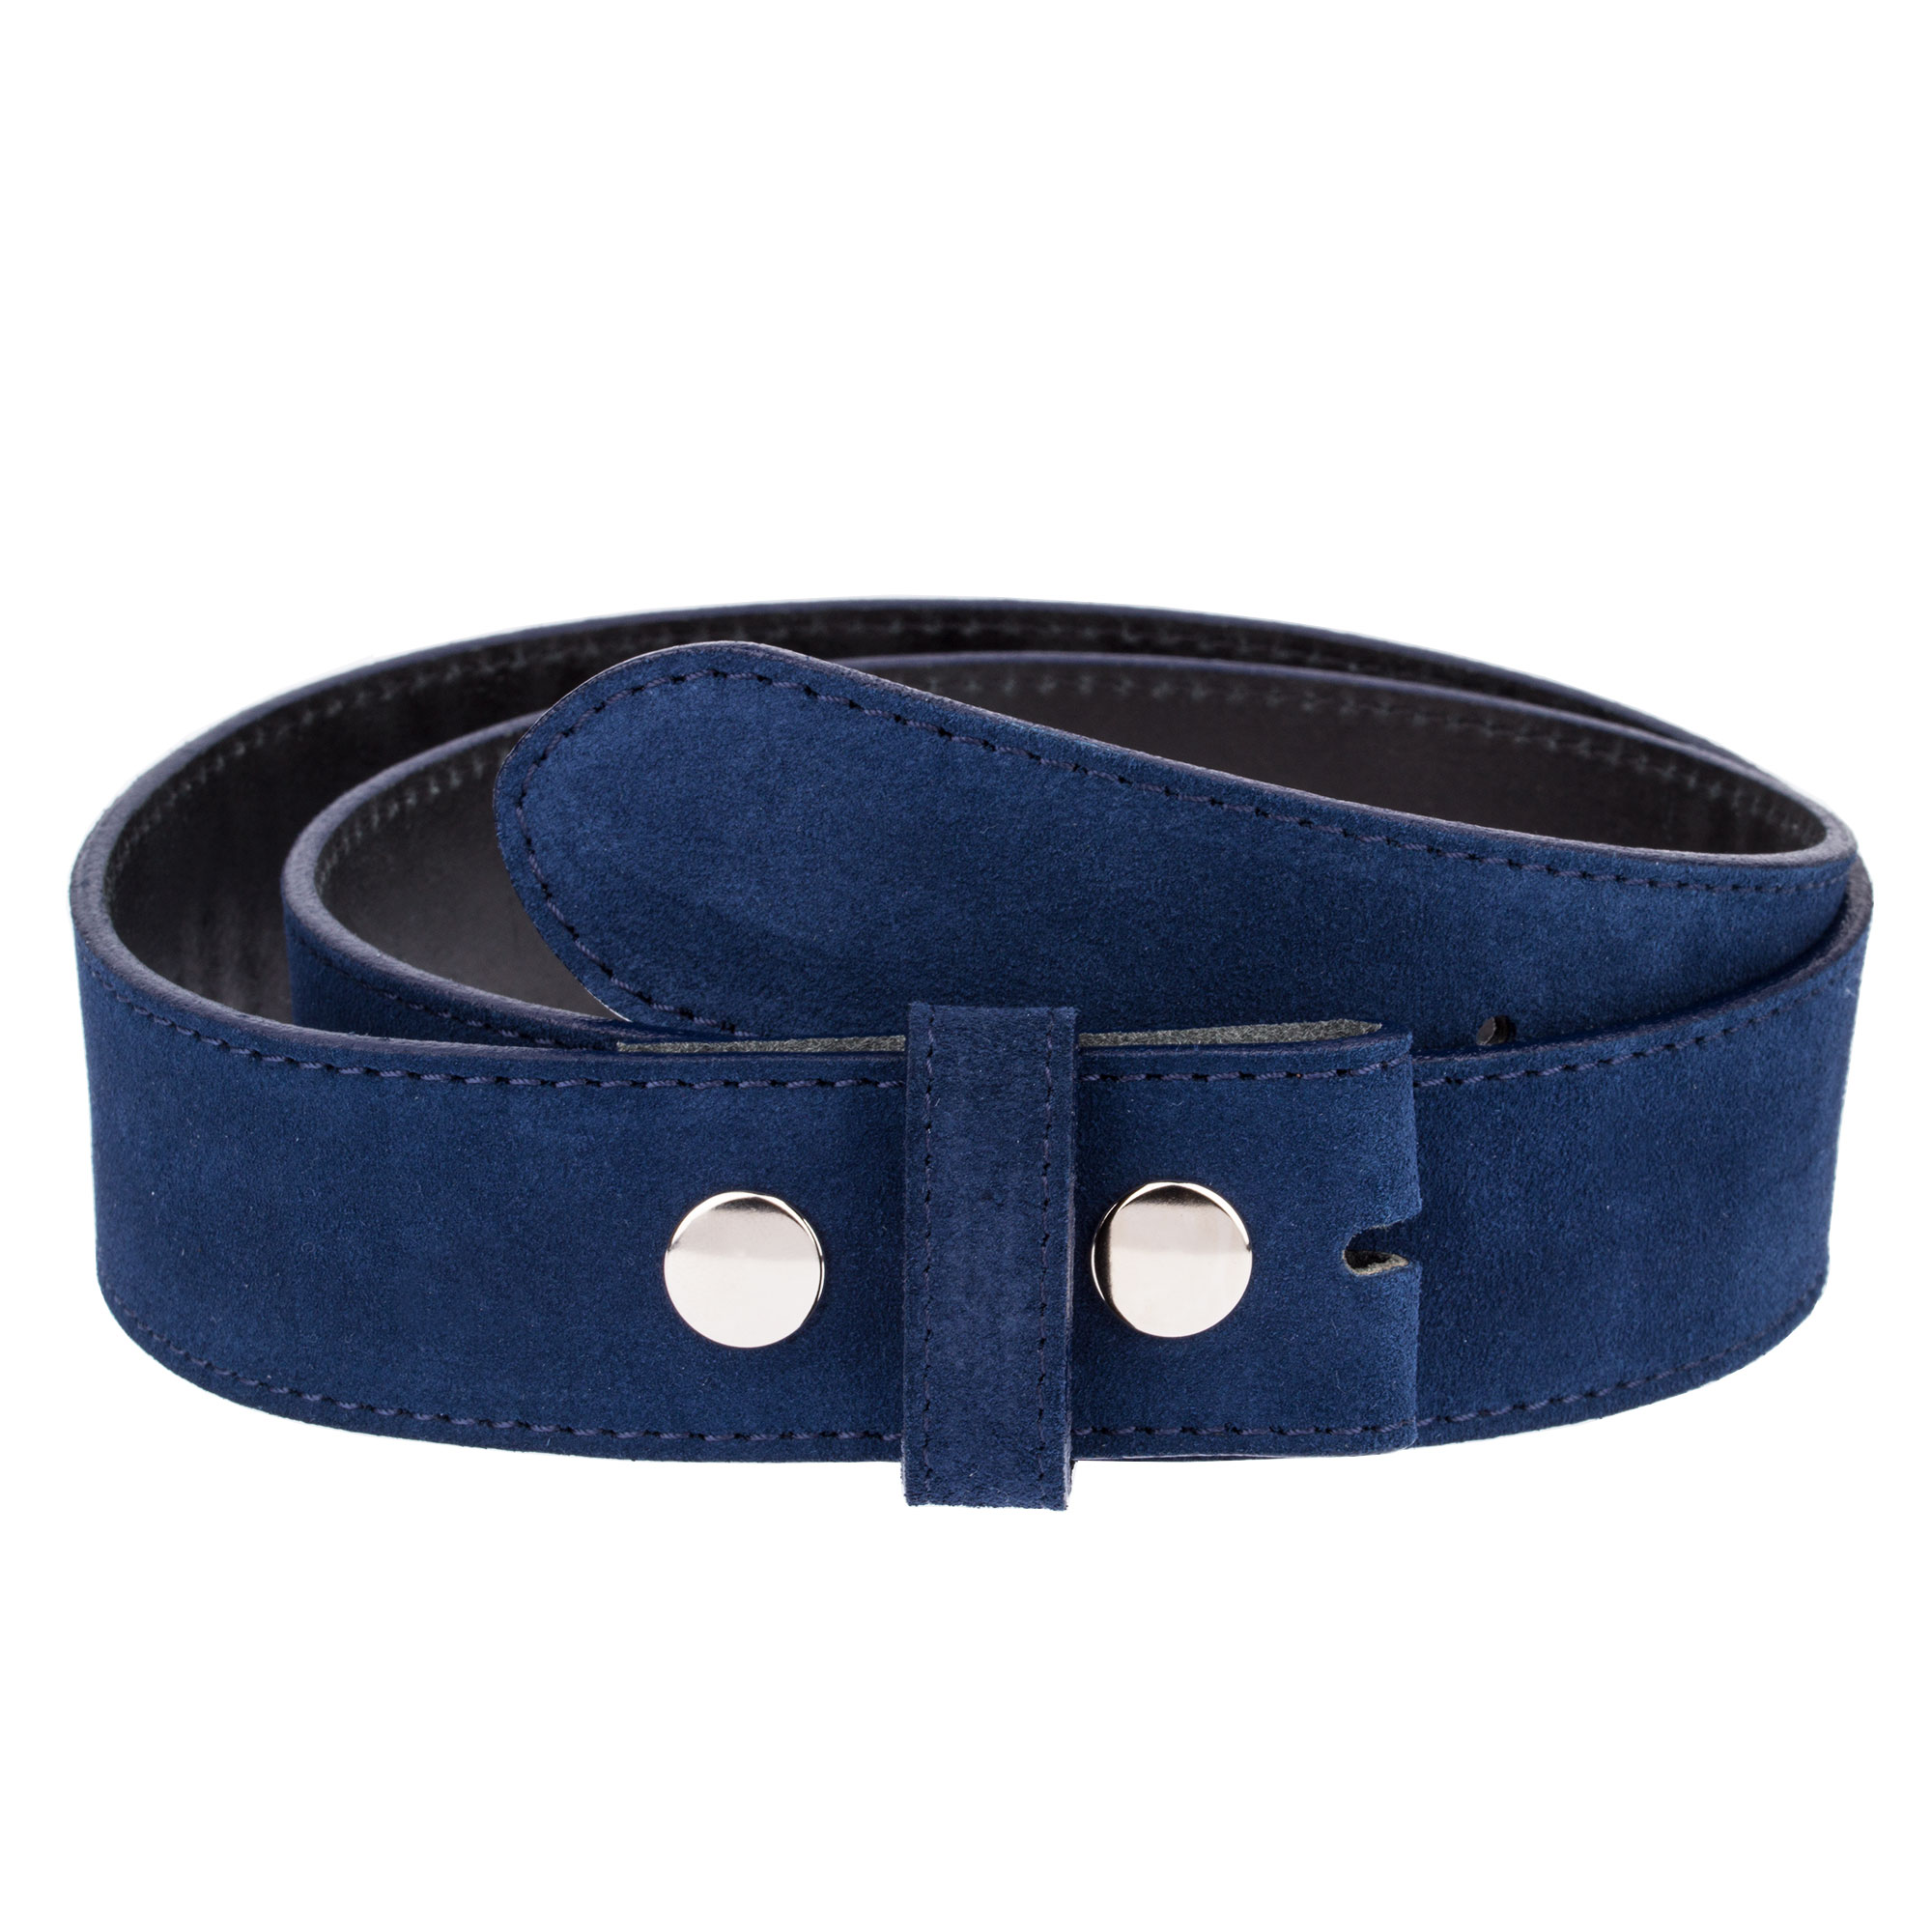 73f09acf9 Details about Rodeo Cowboy Belt strap Snap on For Western Belts Buckles  Blue suede leather